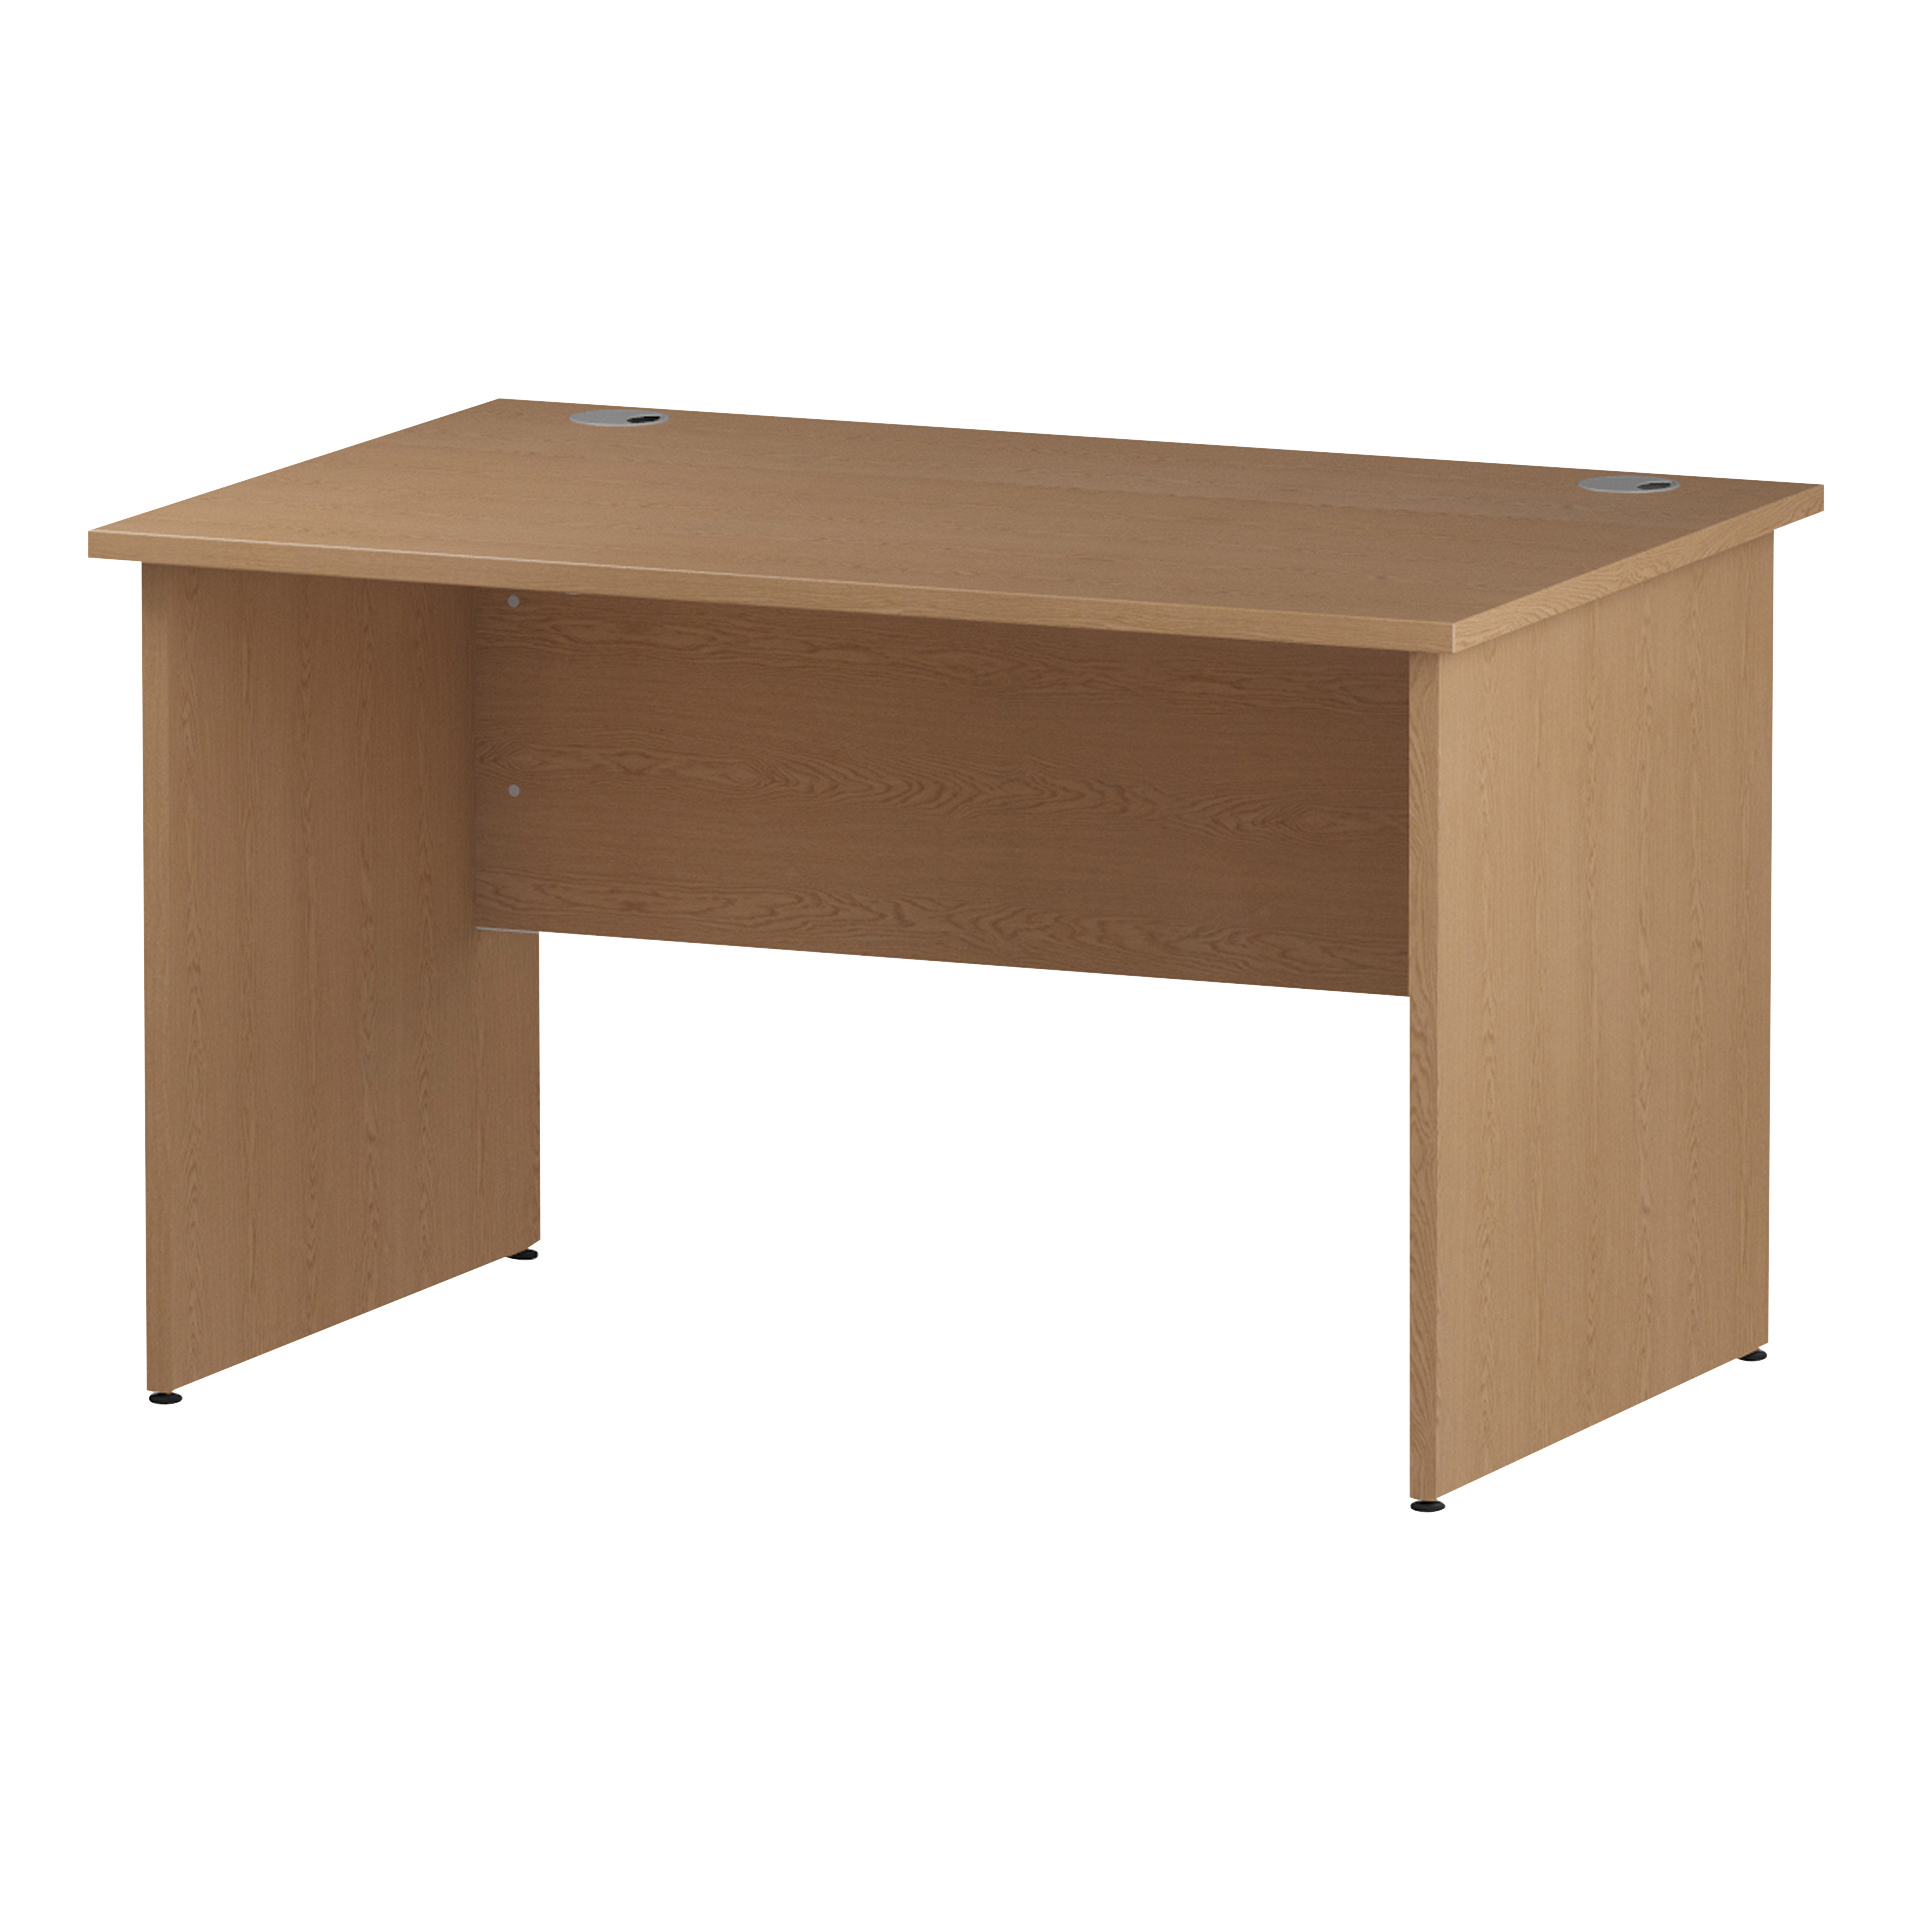 Trexus Rectangular Desk Panel End Leg 1200x800mm Oak Ref I000828